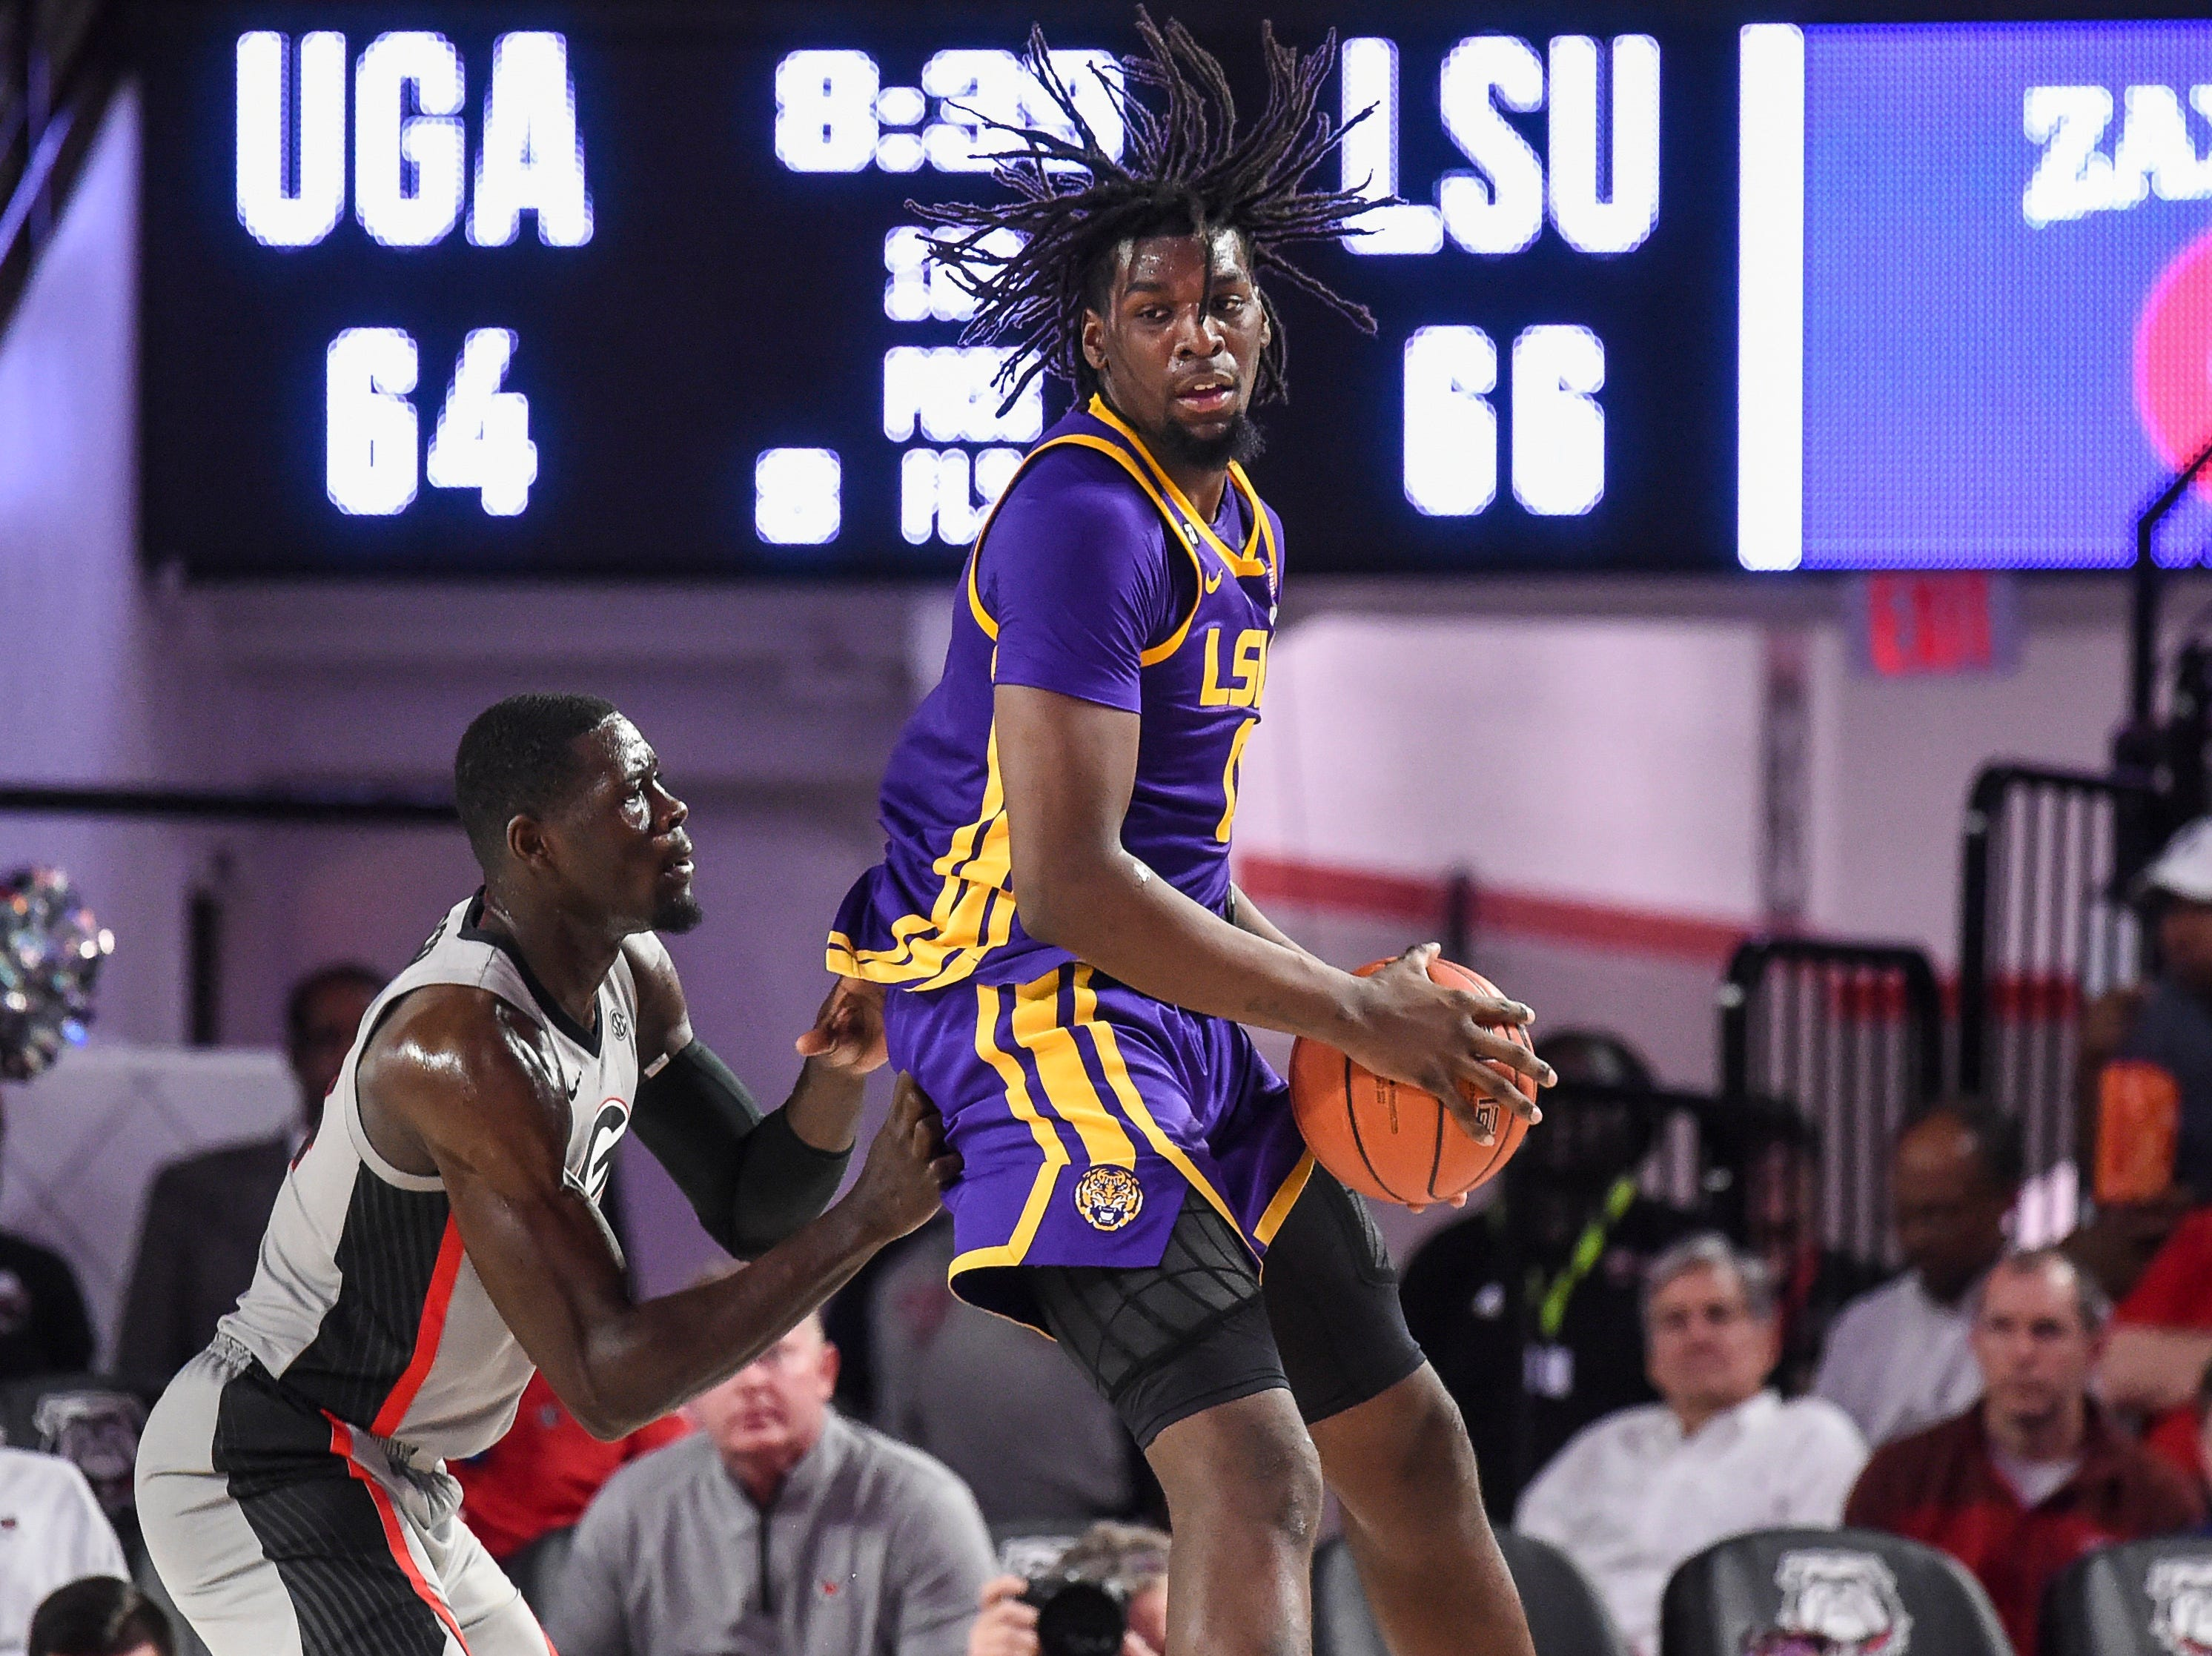 Feb 16, 2019; Athens, GA, USA; LSU Tigers forward Naz Reid (0) controls a rebound against Georgia Bulldogs forward Derek Ogbeide (34) during the second half at Stegeman Coliseum. Mandatory Credit: Dale Zanine-USA TODAY Sports